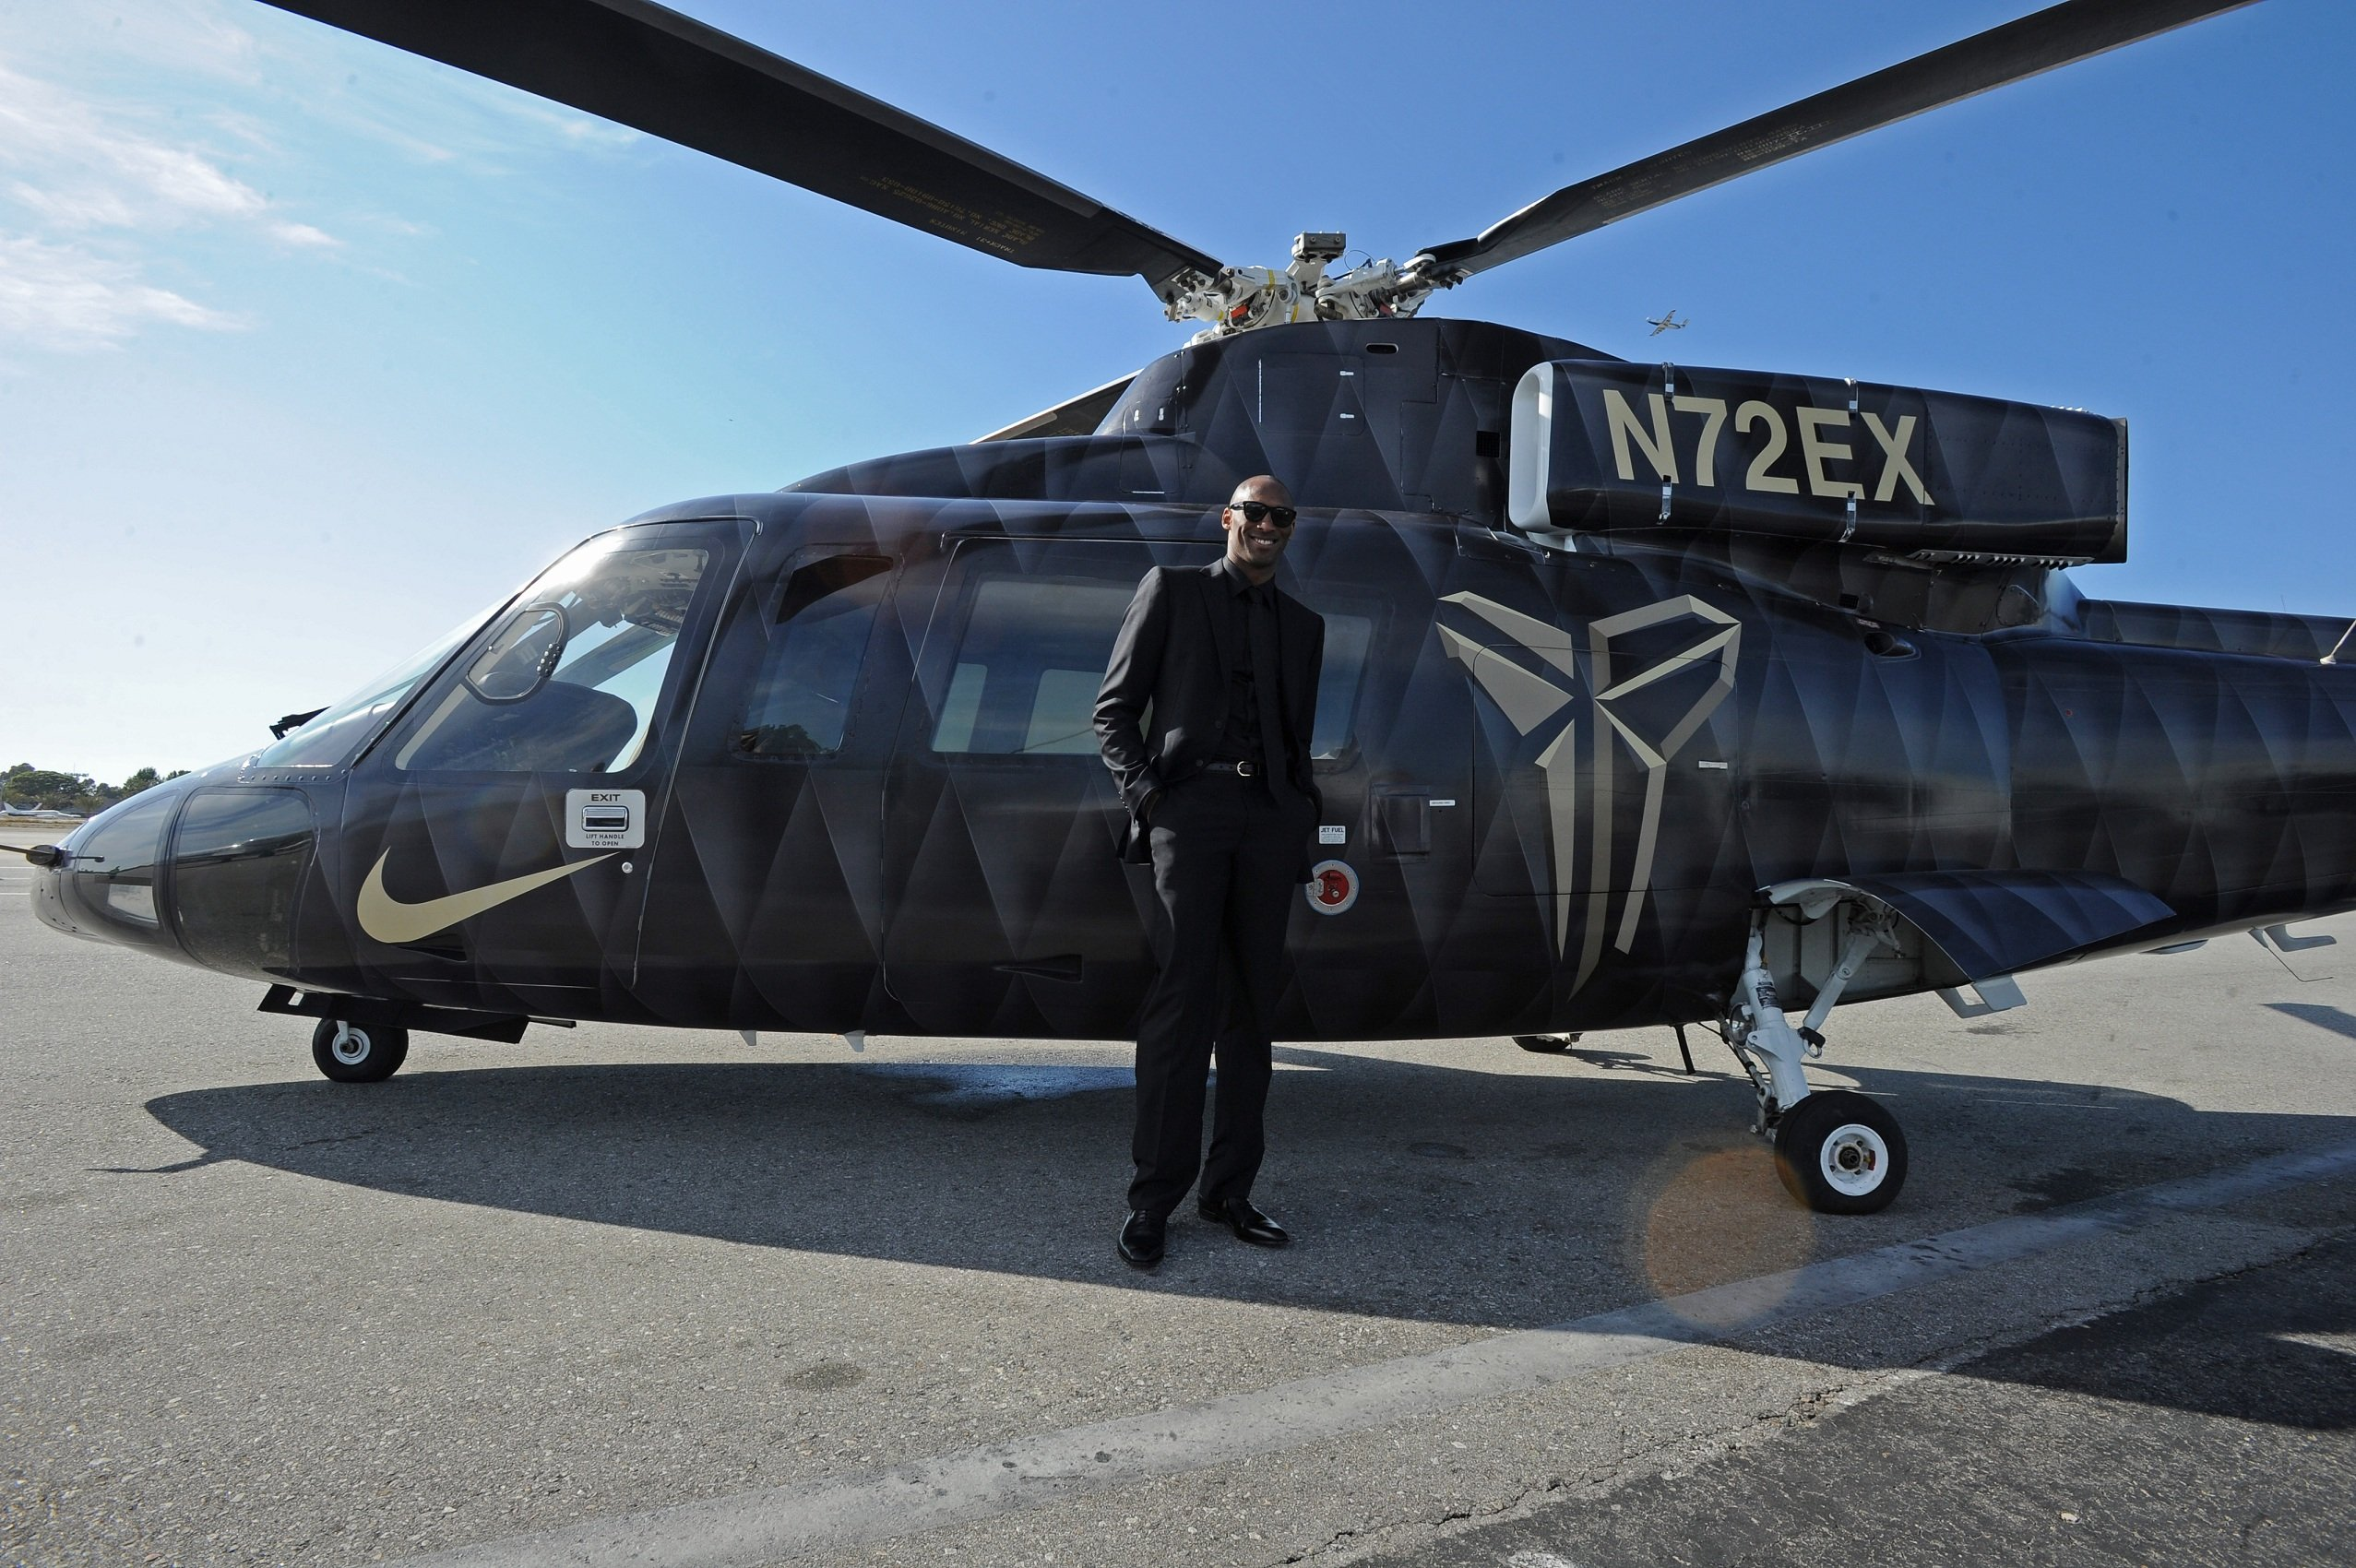 Kobe Bryant standing next to a helicopter on April 13, 2016, at Staples Center in Los Angeles, California.   Source: Getty Images.